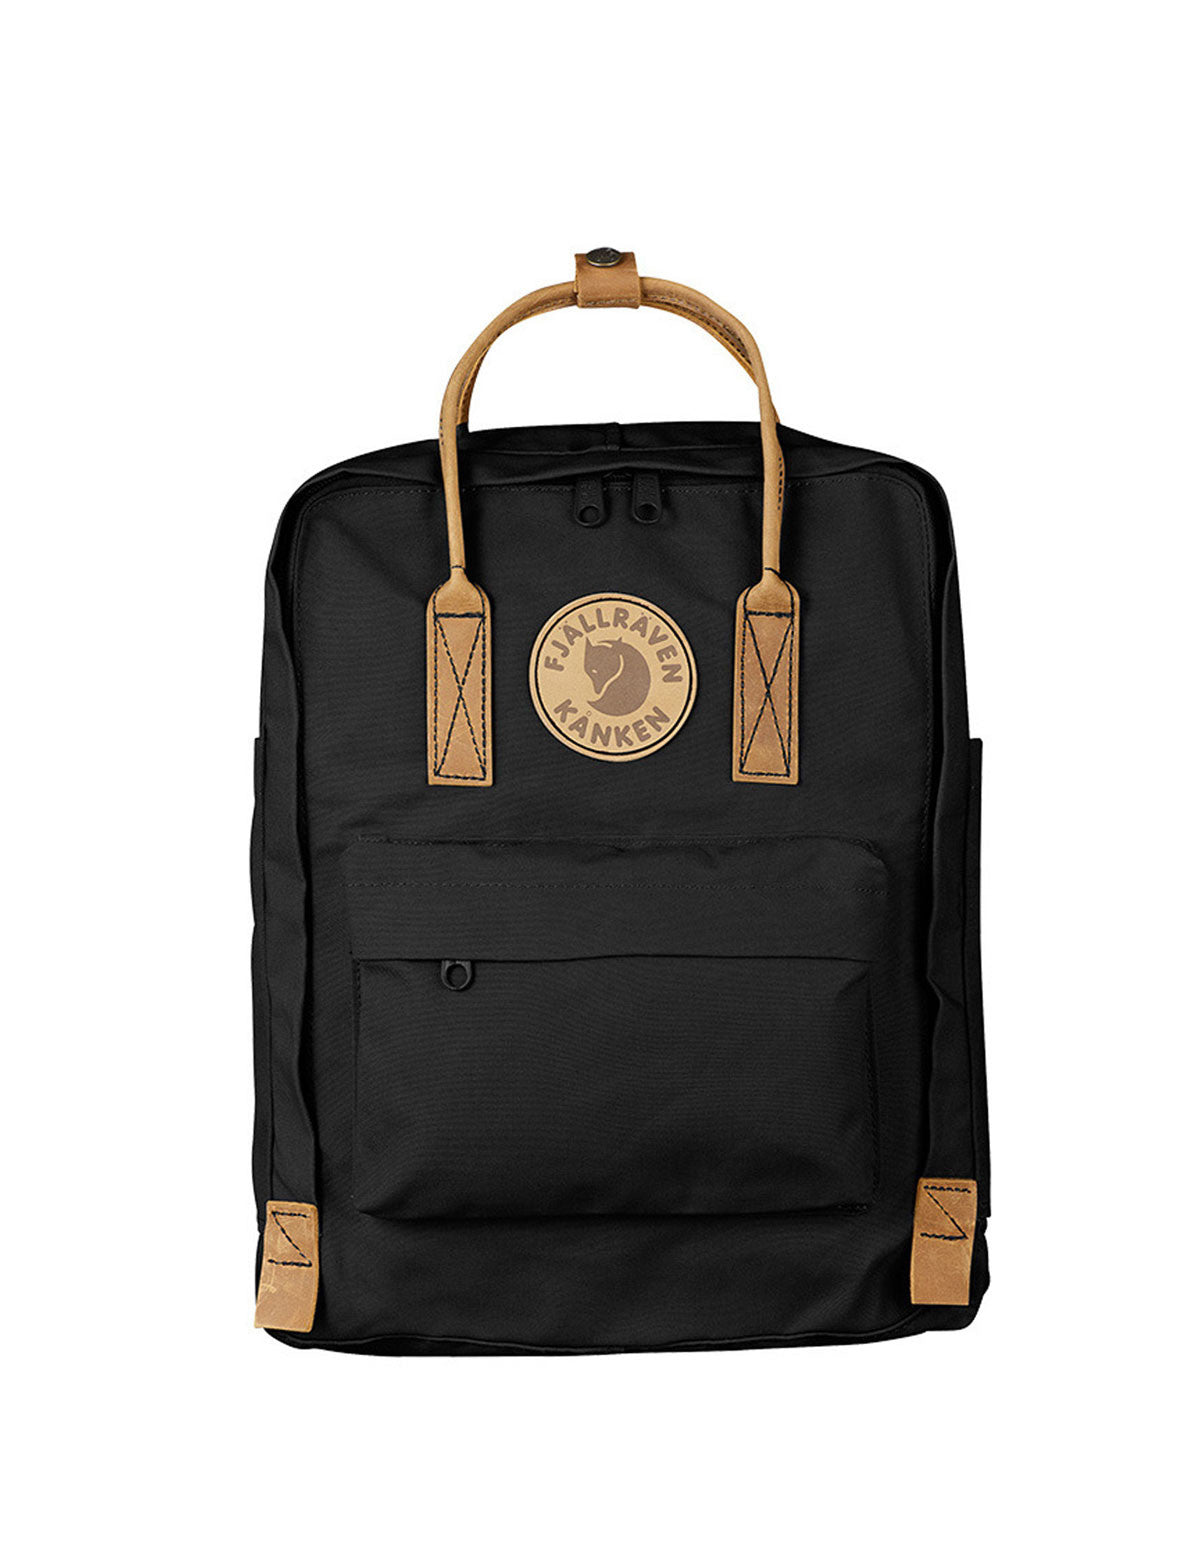 Fjallraven Kanken No. 2 Backpack Black - Still Life